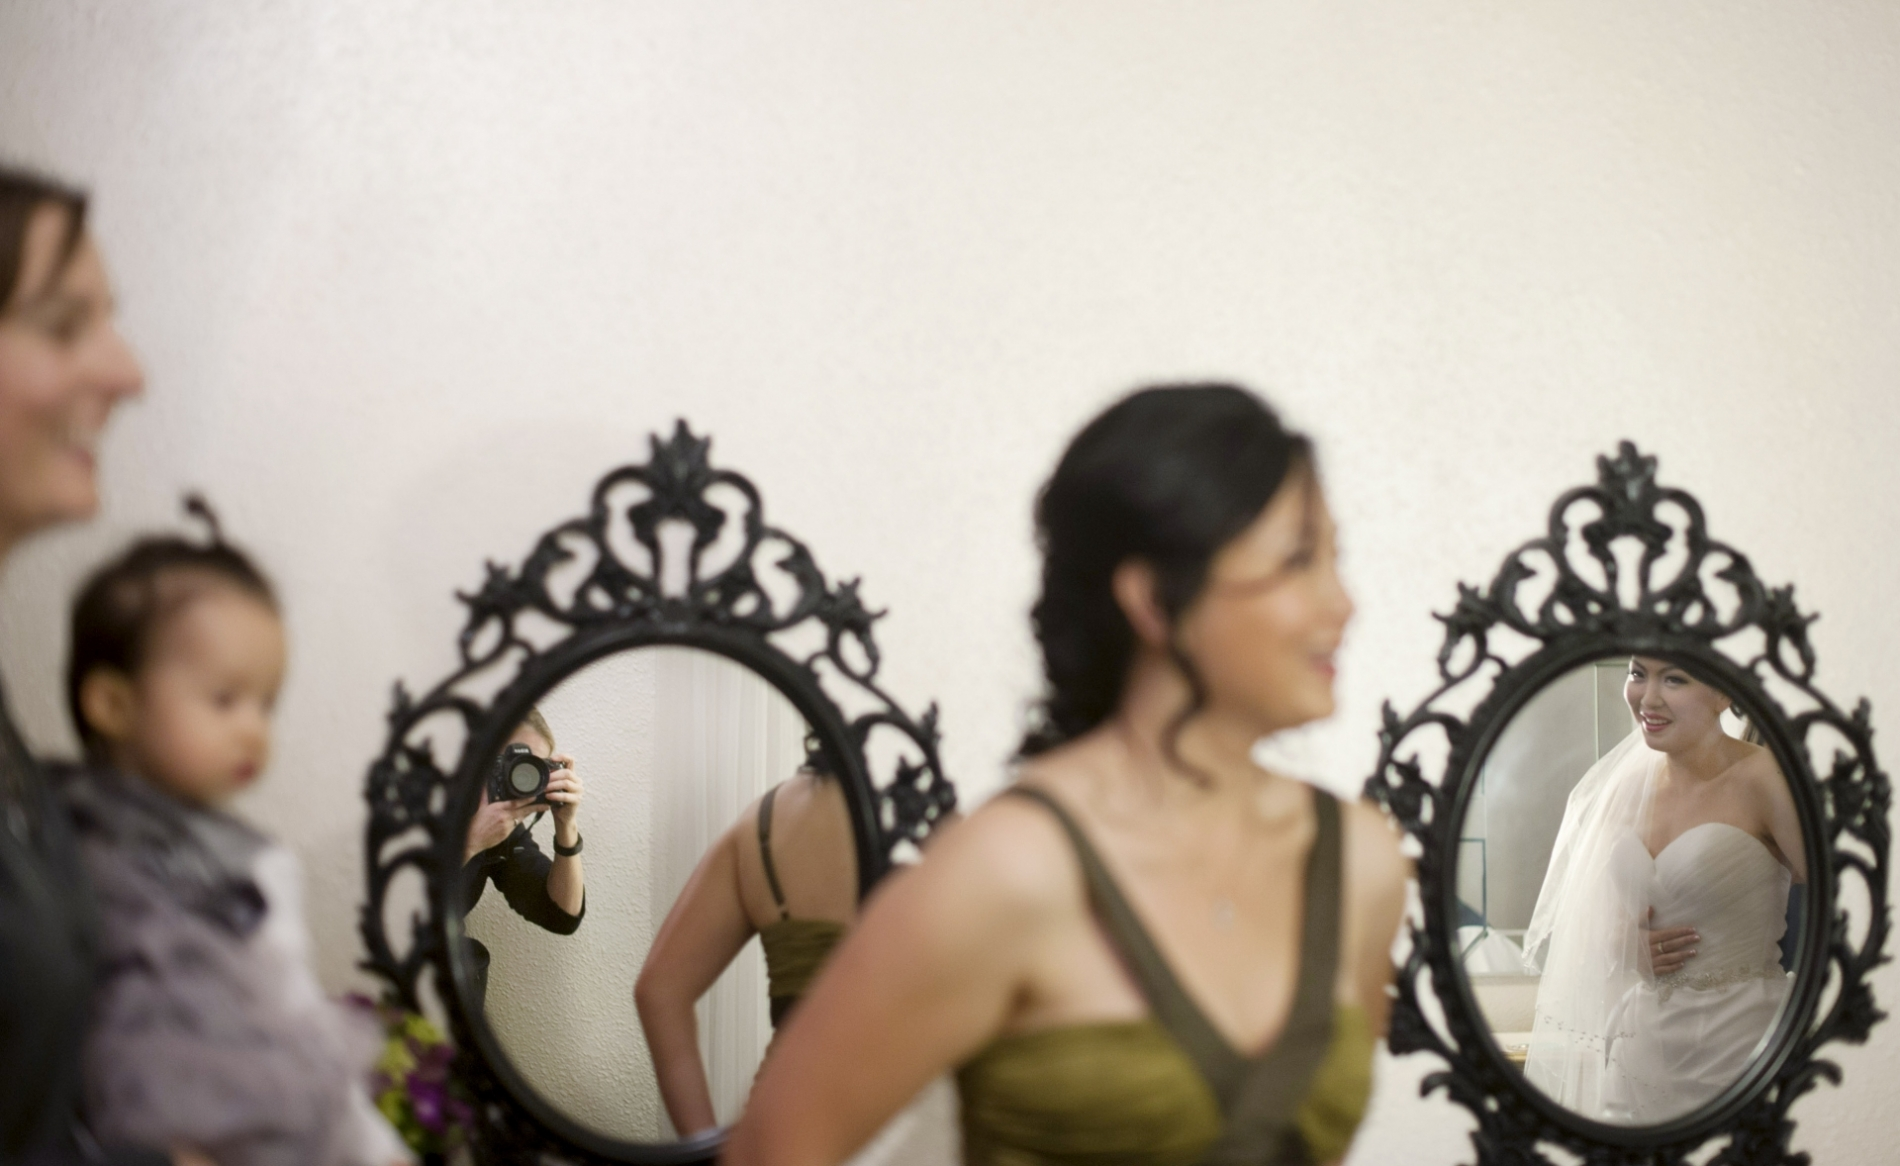 Laura Segall, an AZ wedding photographer, caught her own reflection at an event